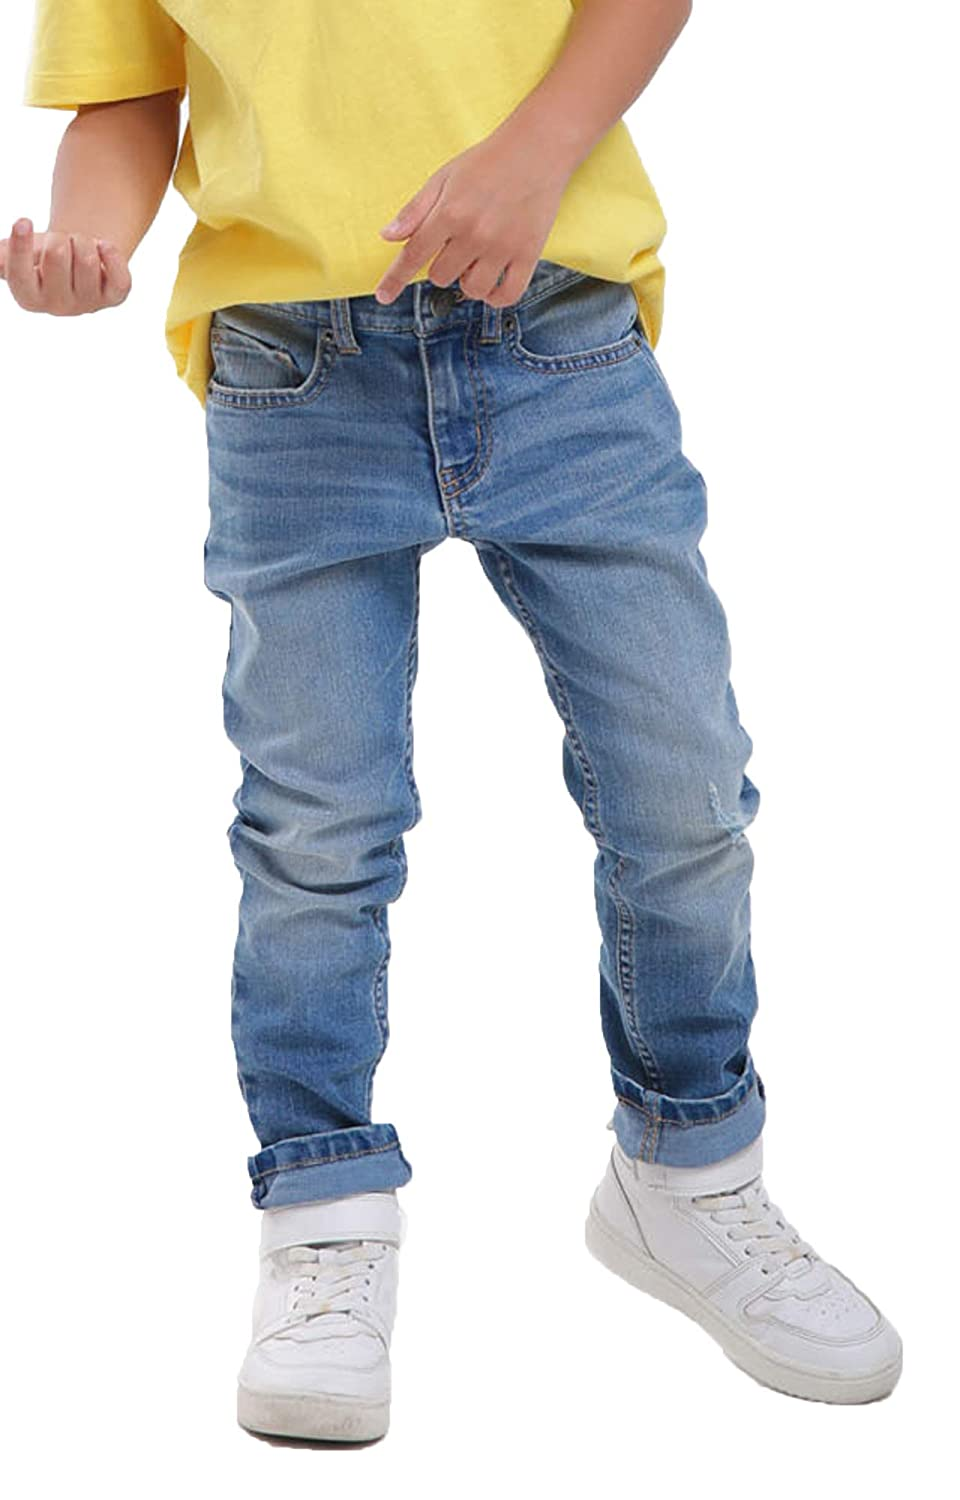 M.D.K Boys Classic Solid Comfort Fit Kids Modern Skinny Denim Pants Jeans